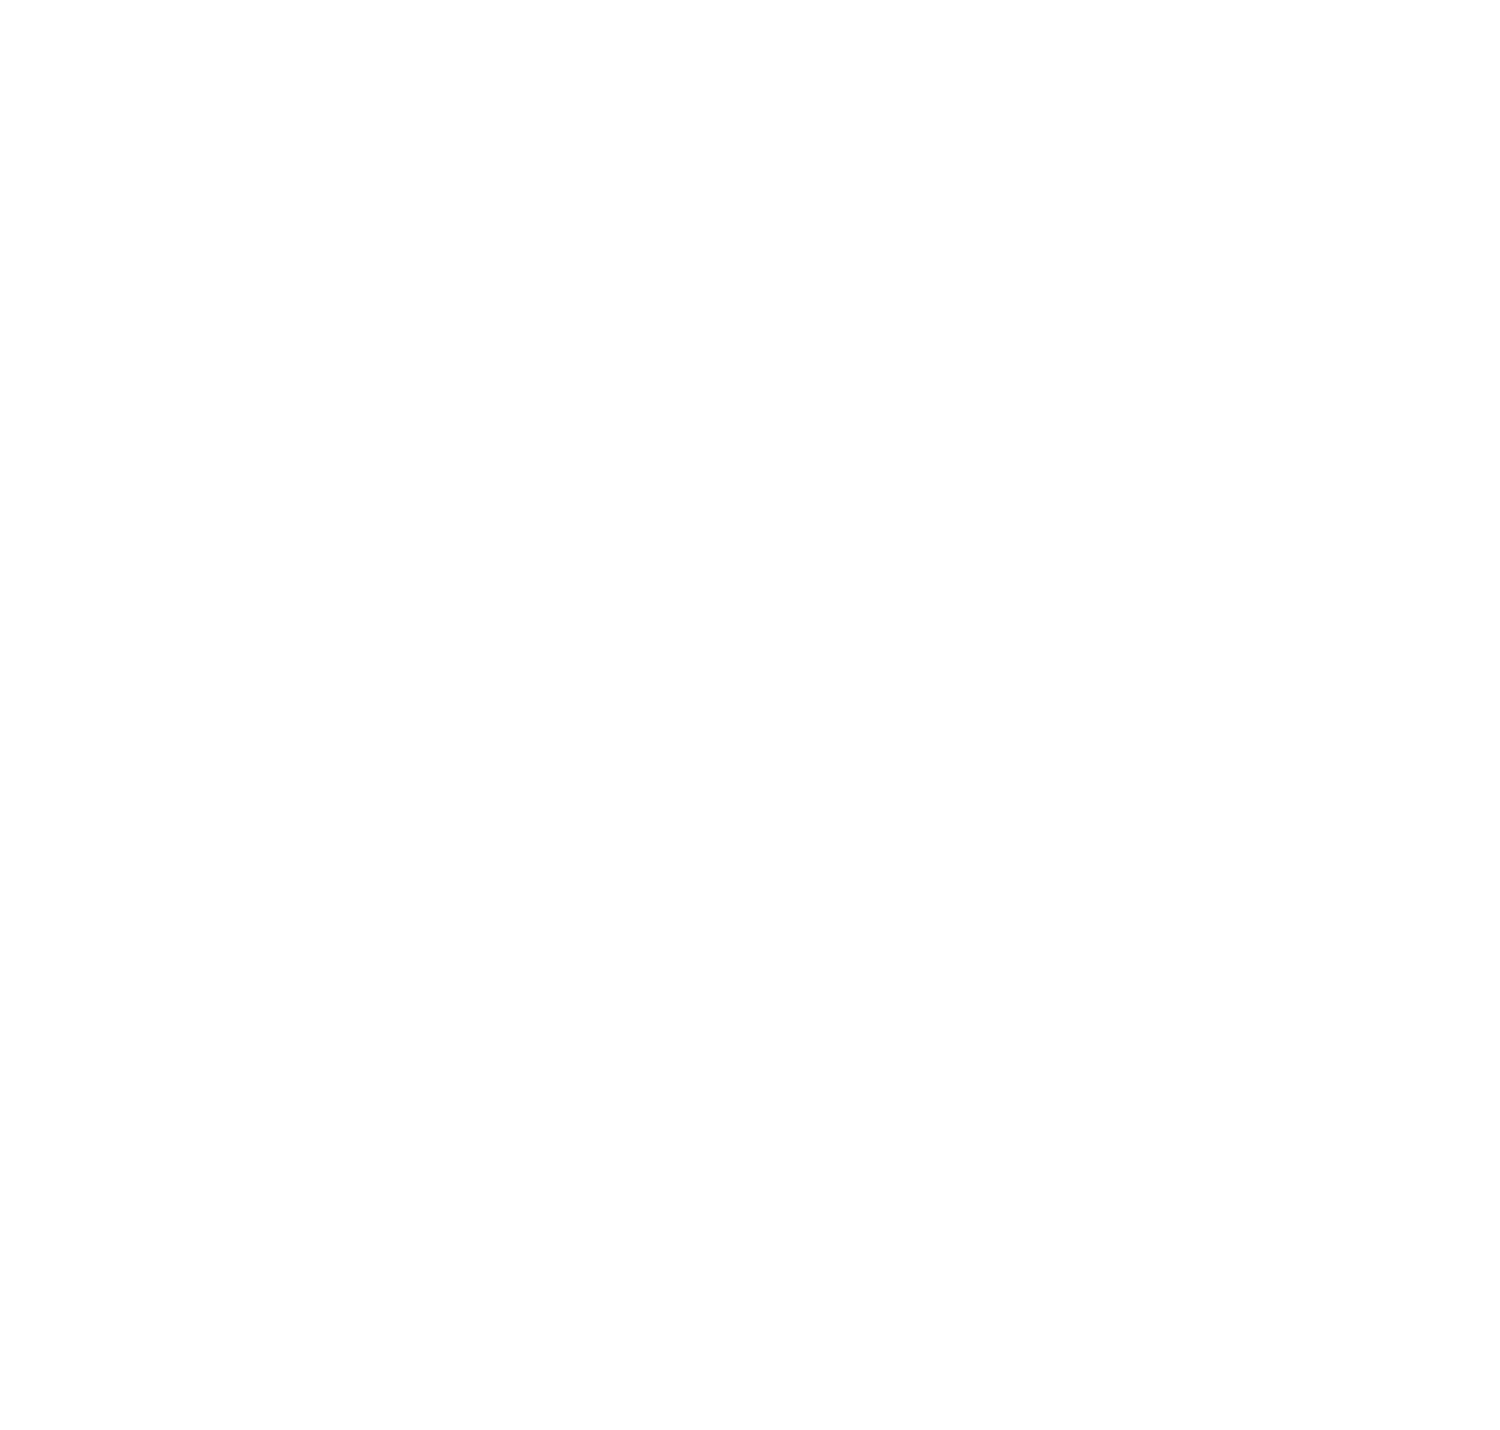 Couture Shades | Custom Lampshades | Custom handcrafted artistry | Lamp Shades New York City